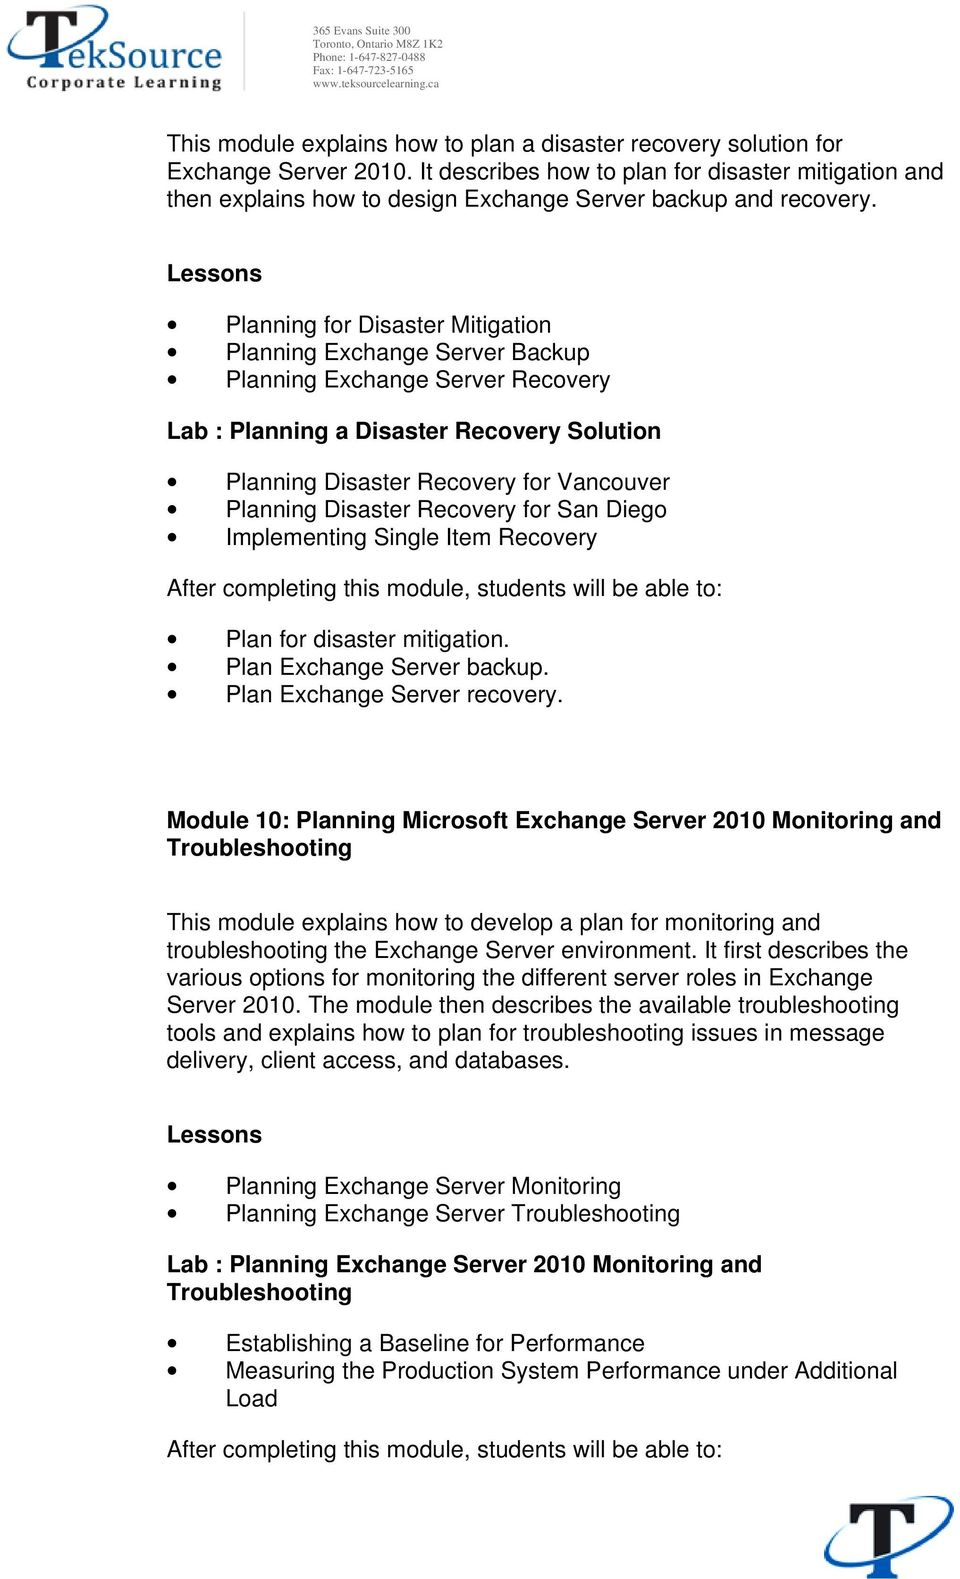 Planning for Disaster Mitigation Planning Exchange Server Backup Planning Exchange Server Recovery Lab : Planning a Disaster Recovery Solution Planning Disaster Recovery for Vancouver Planning